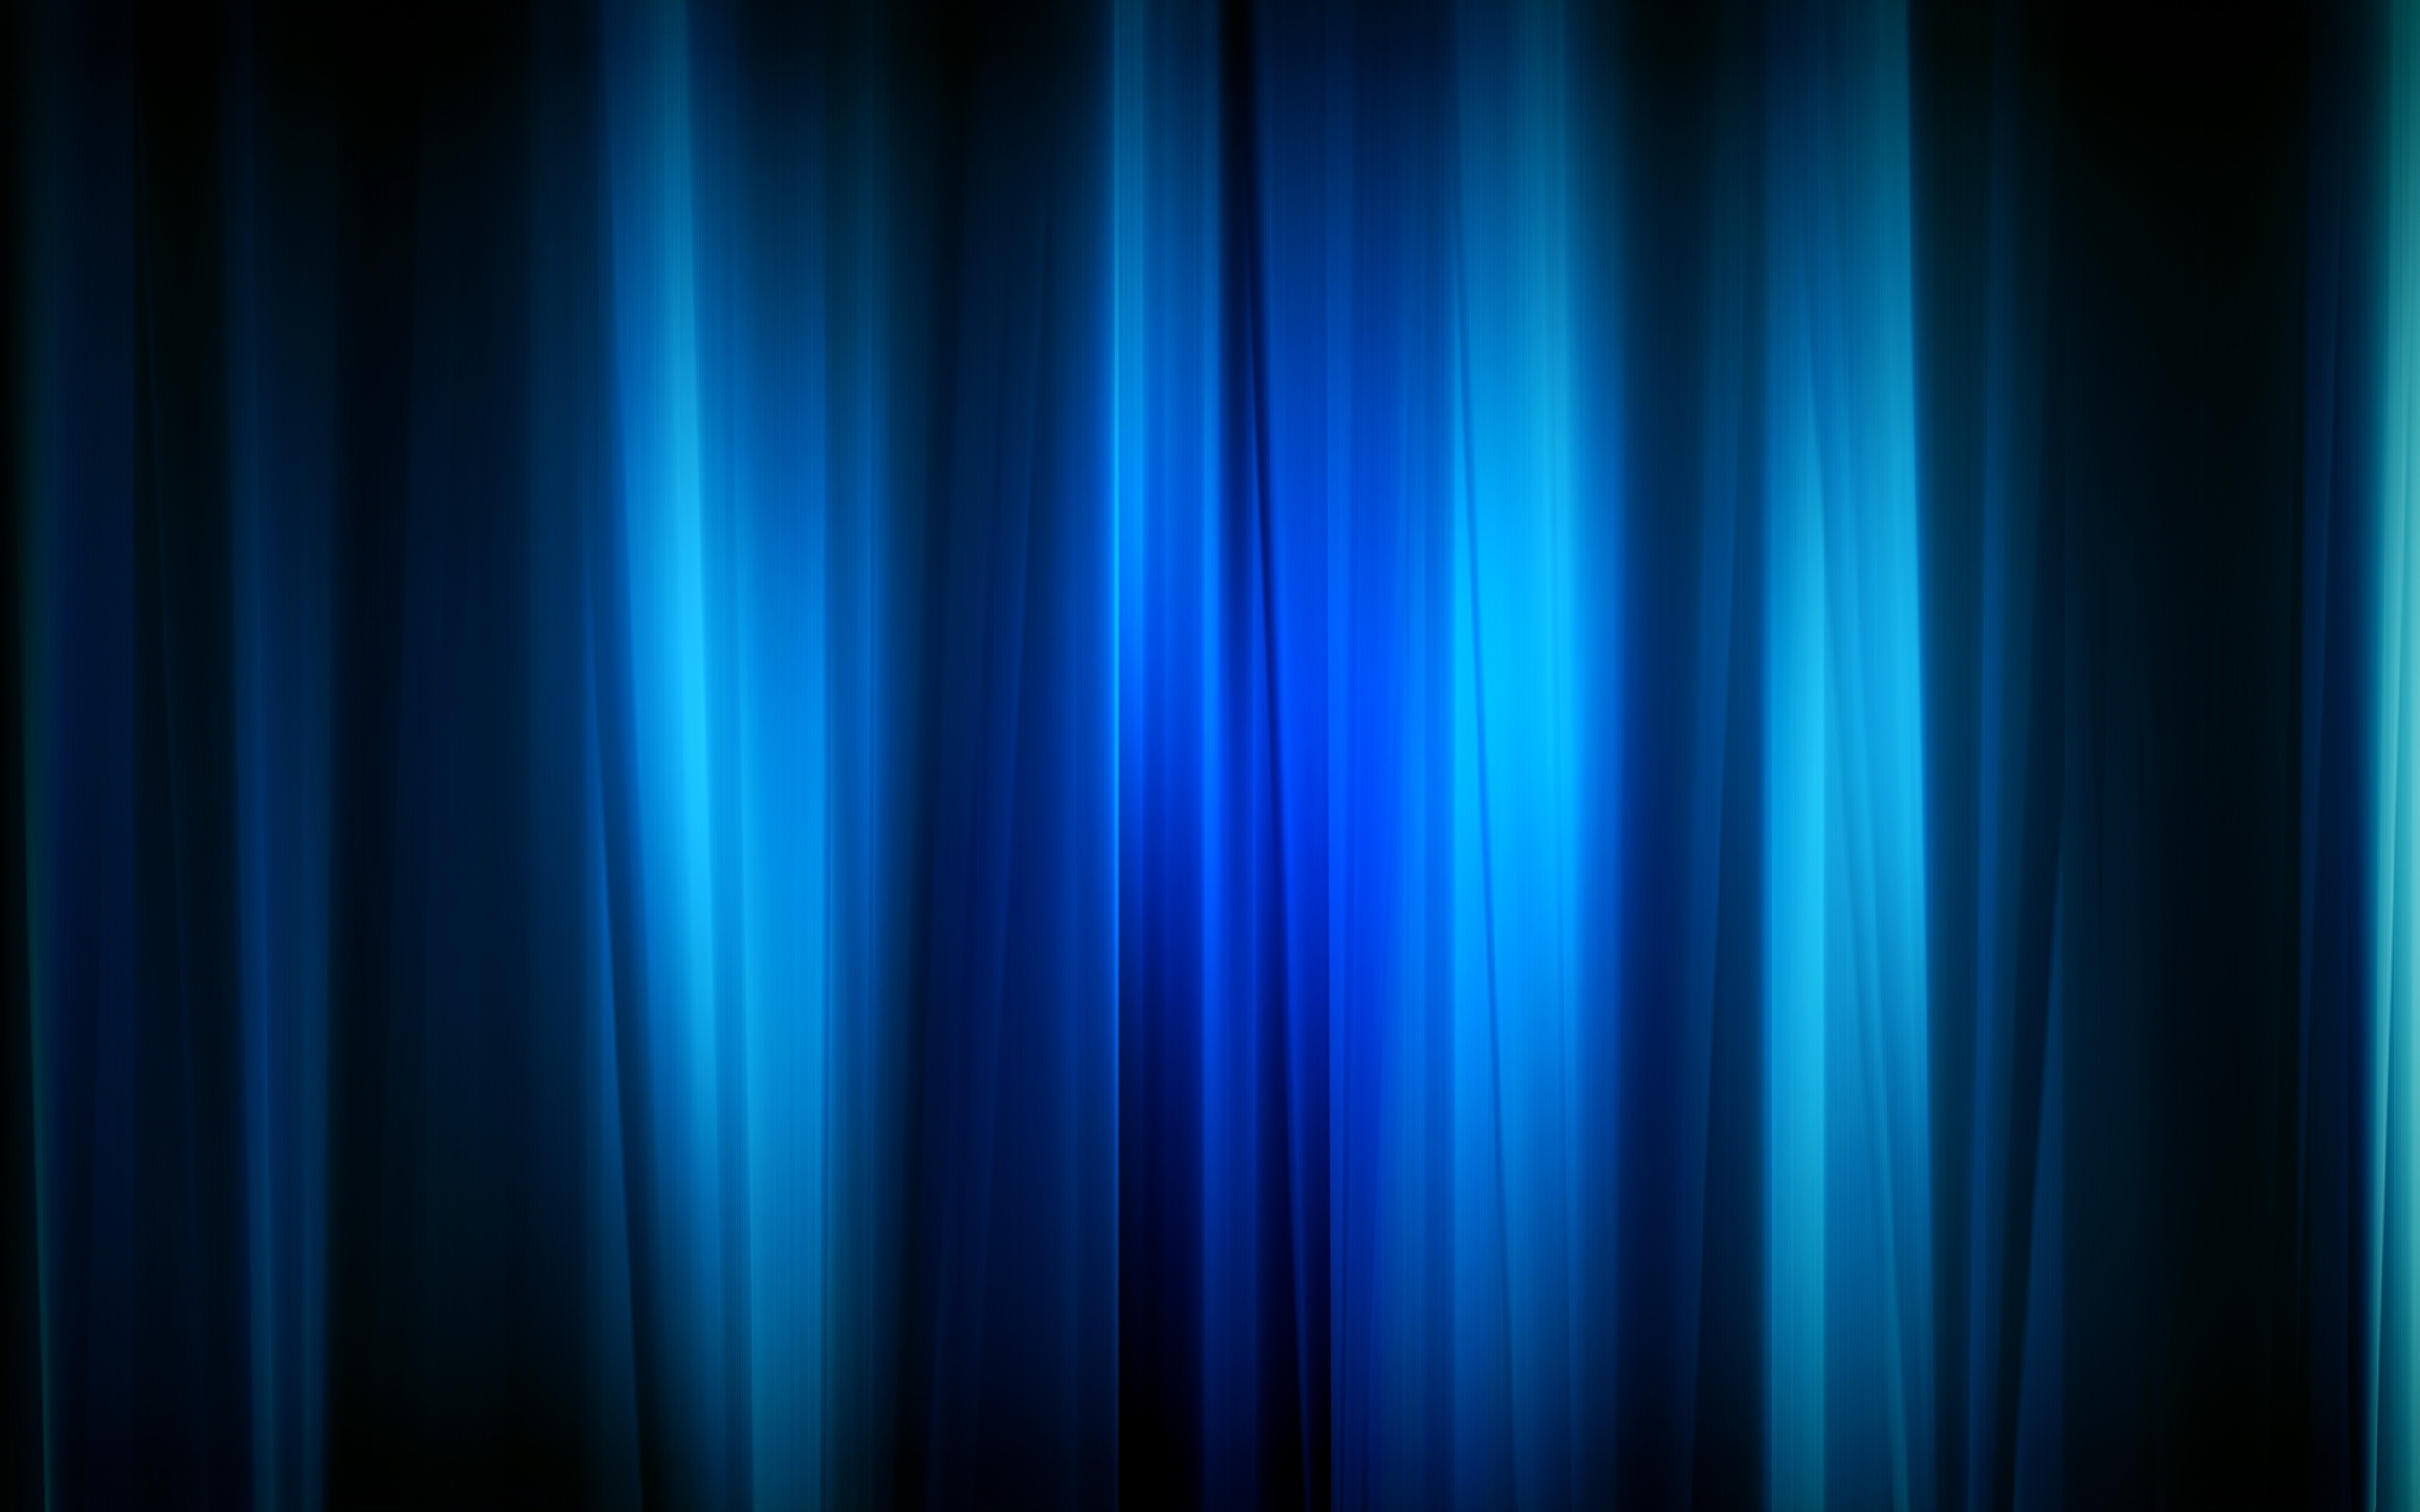 Blue curtain backdrop - Blue Stage Curtains Background Title Beautiful Blue Shades In Black Background Black Background And